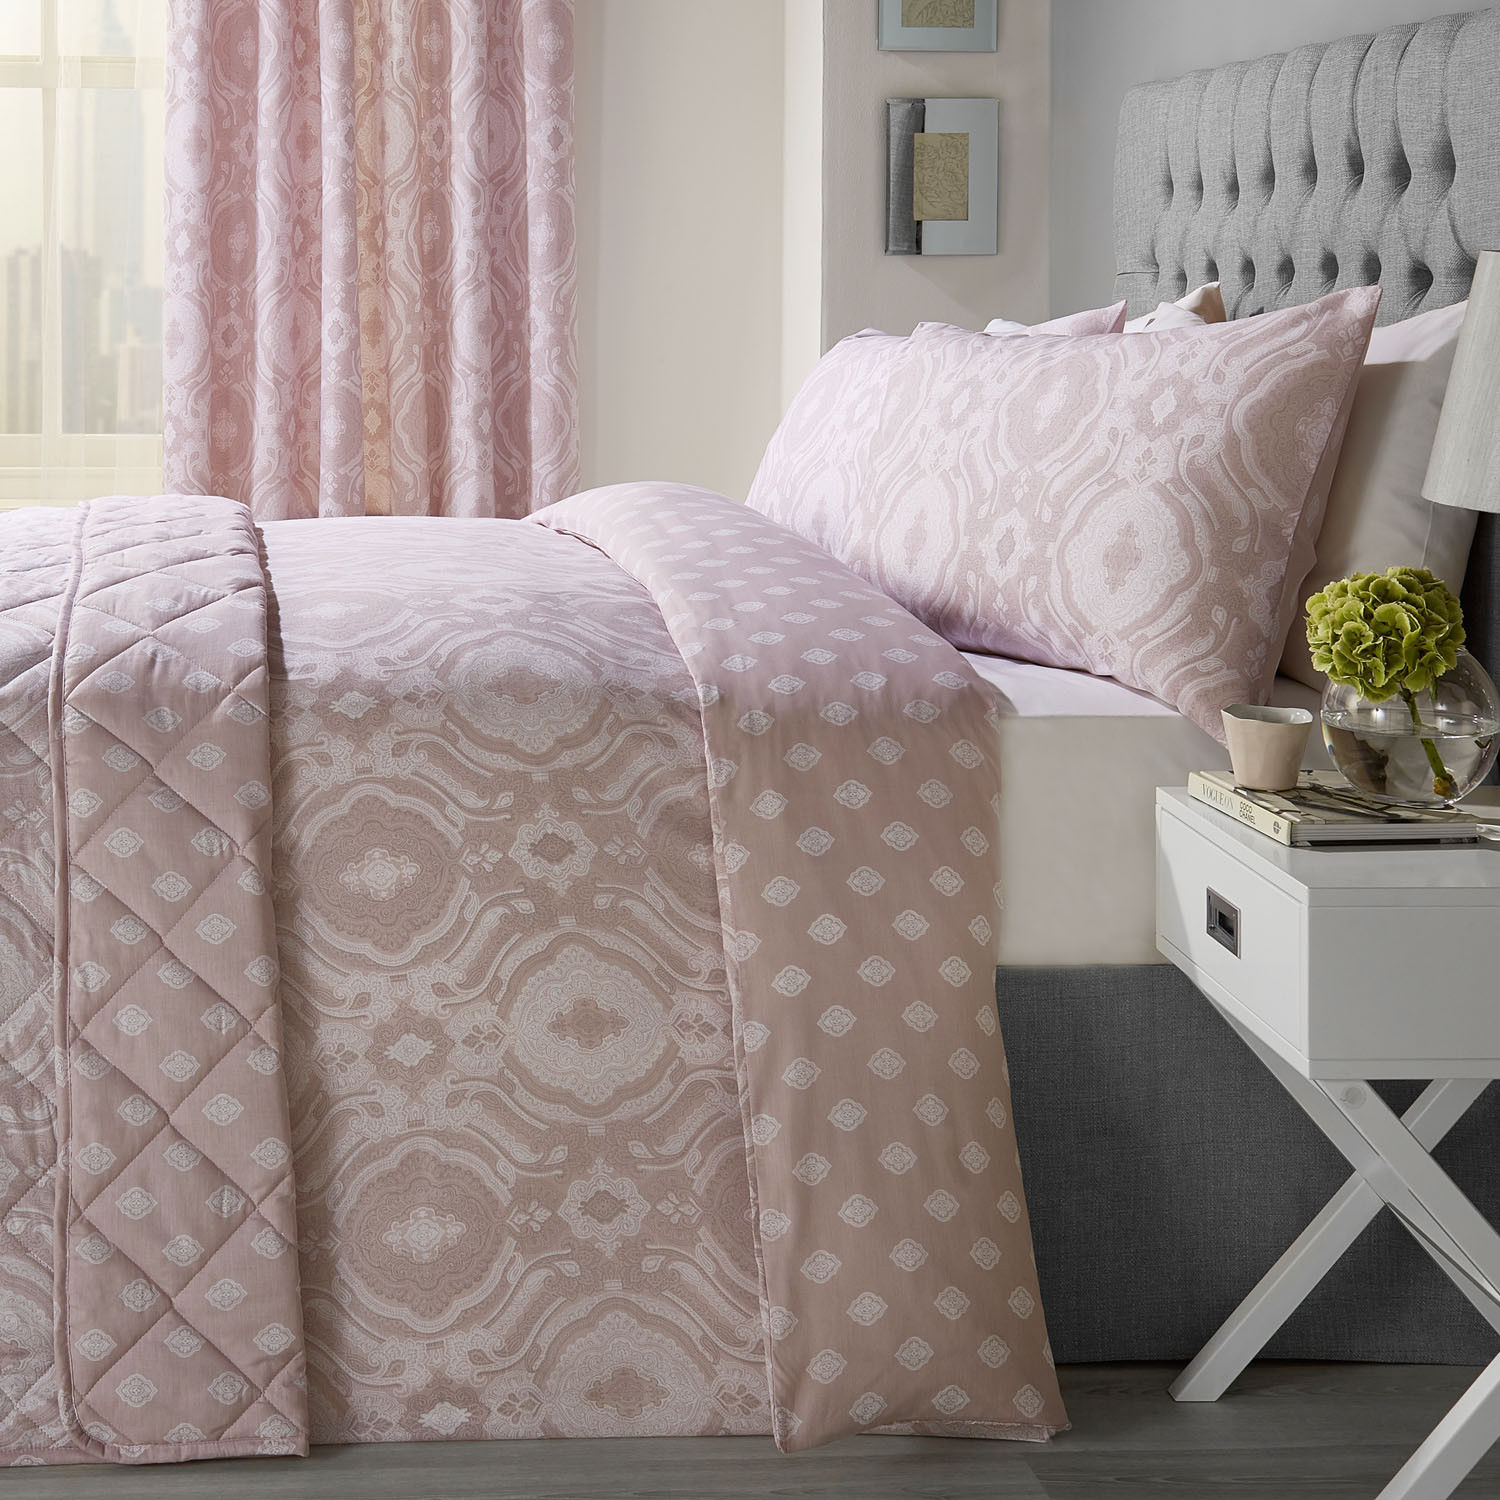 blush covers queen navy size king duvet cover